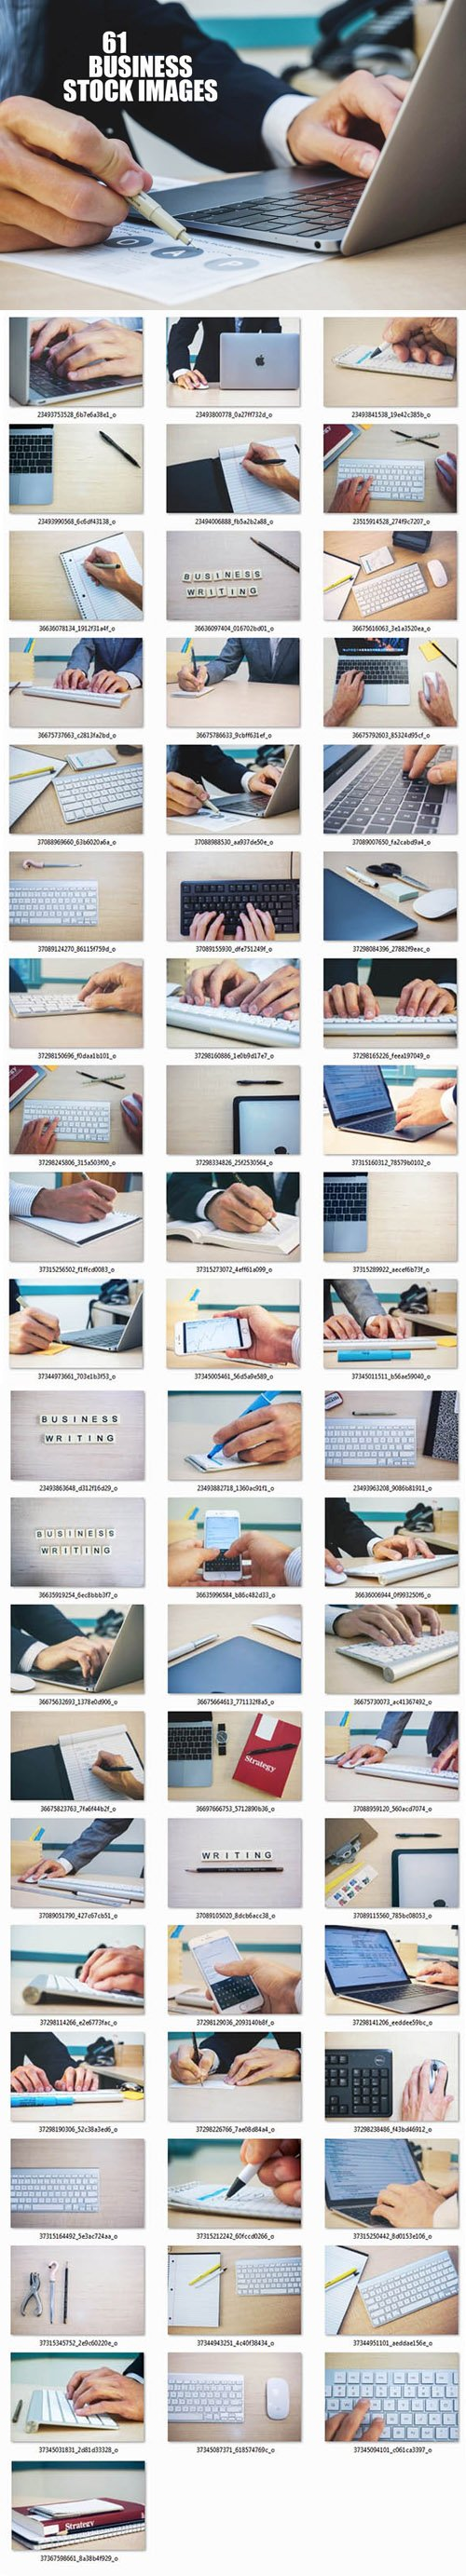 61 Business Stock Images